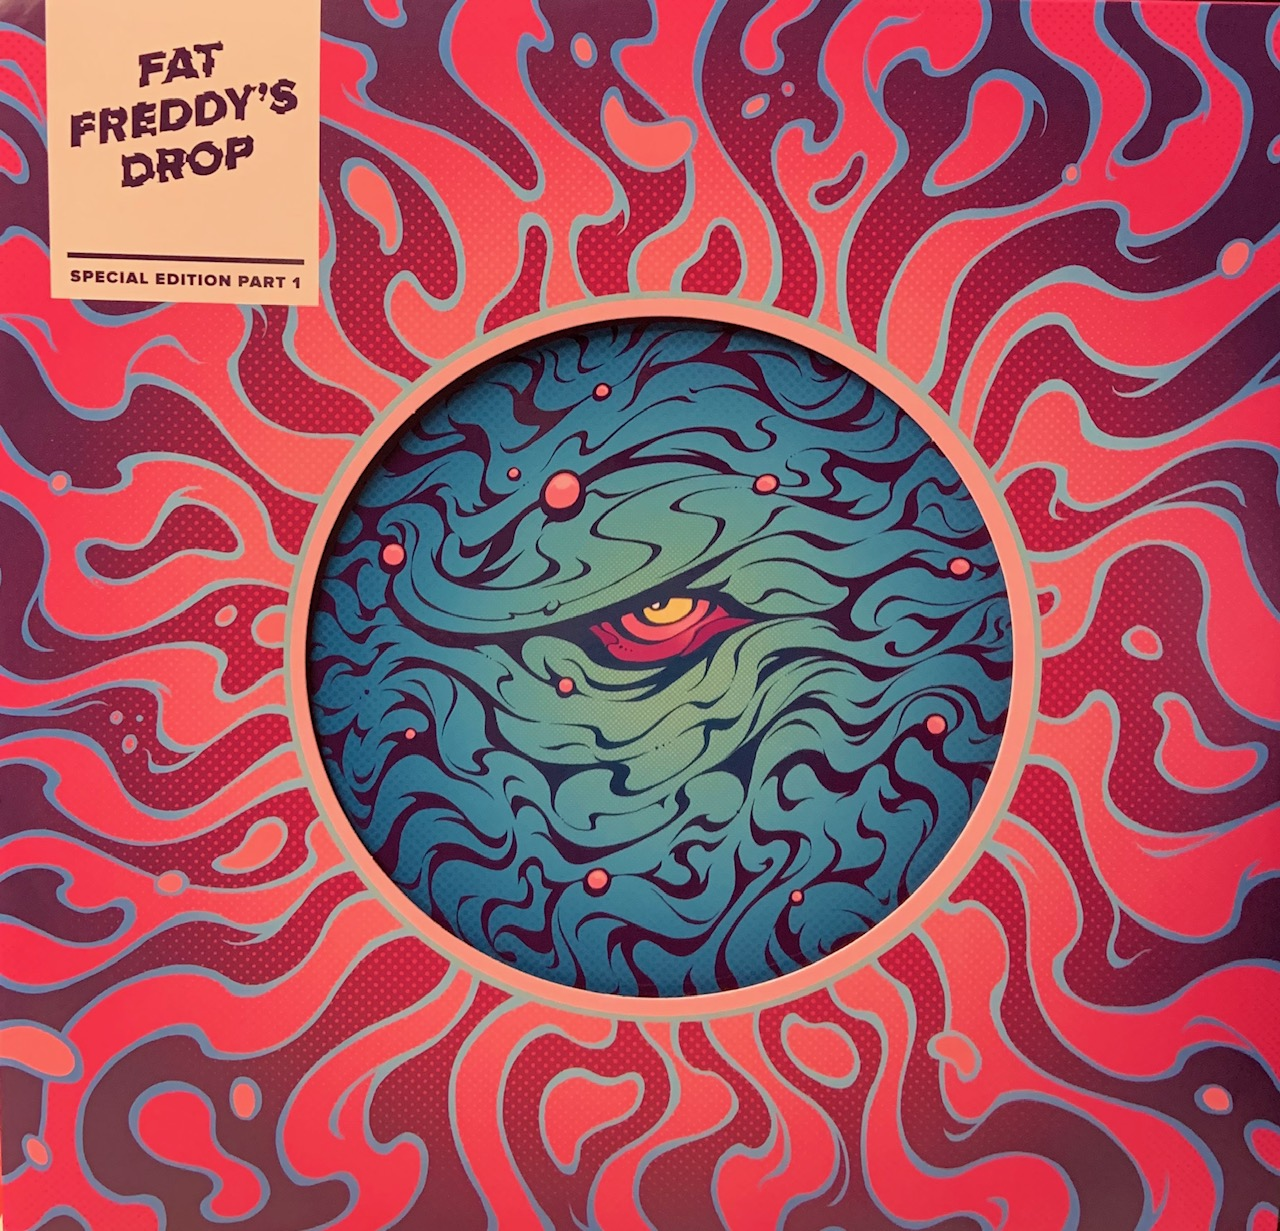 Fat Freddy's Drop  Special Edition Part 1